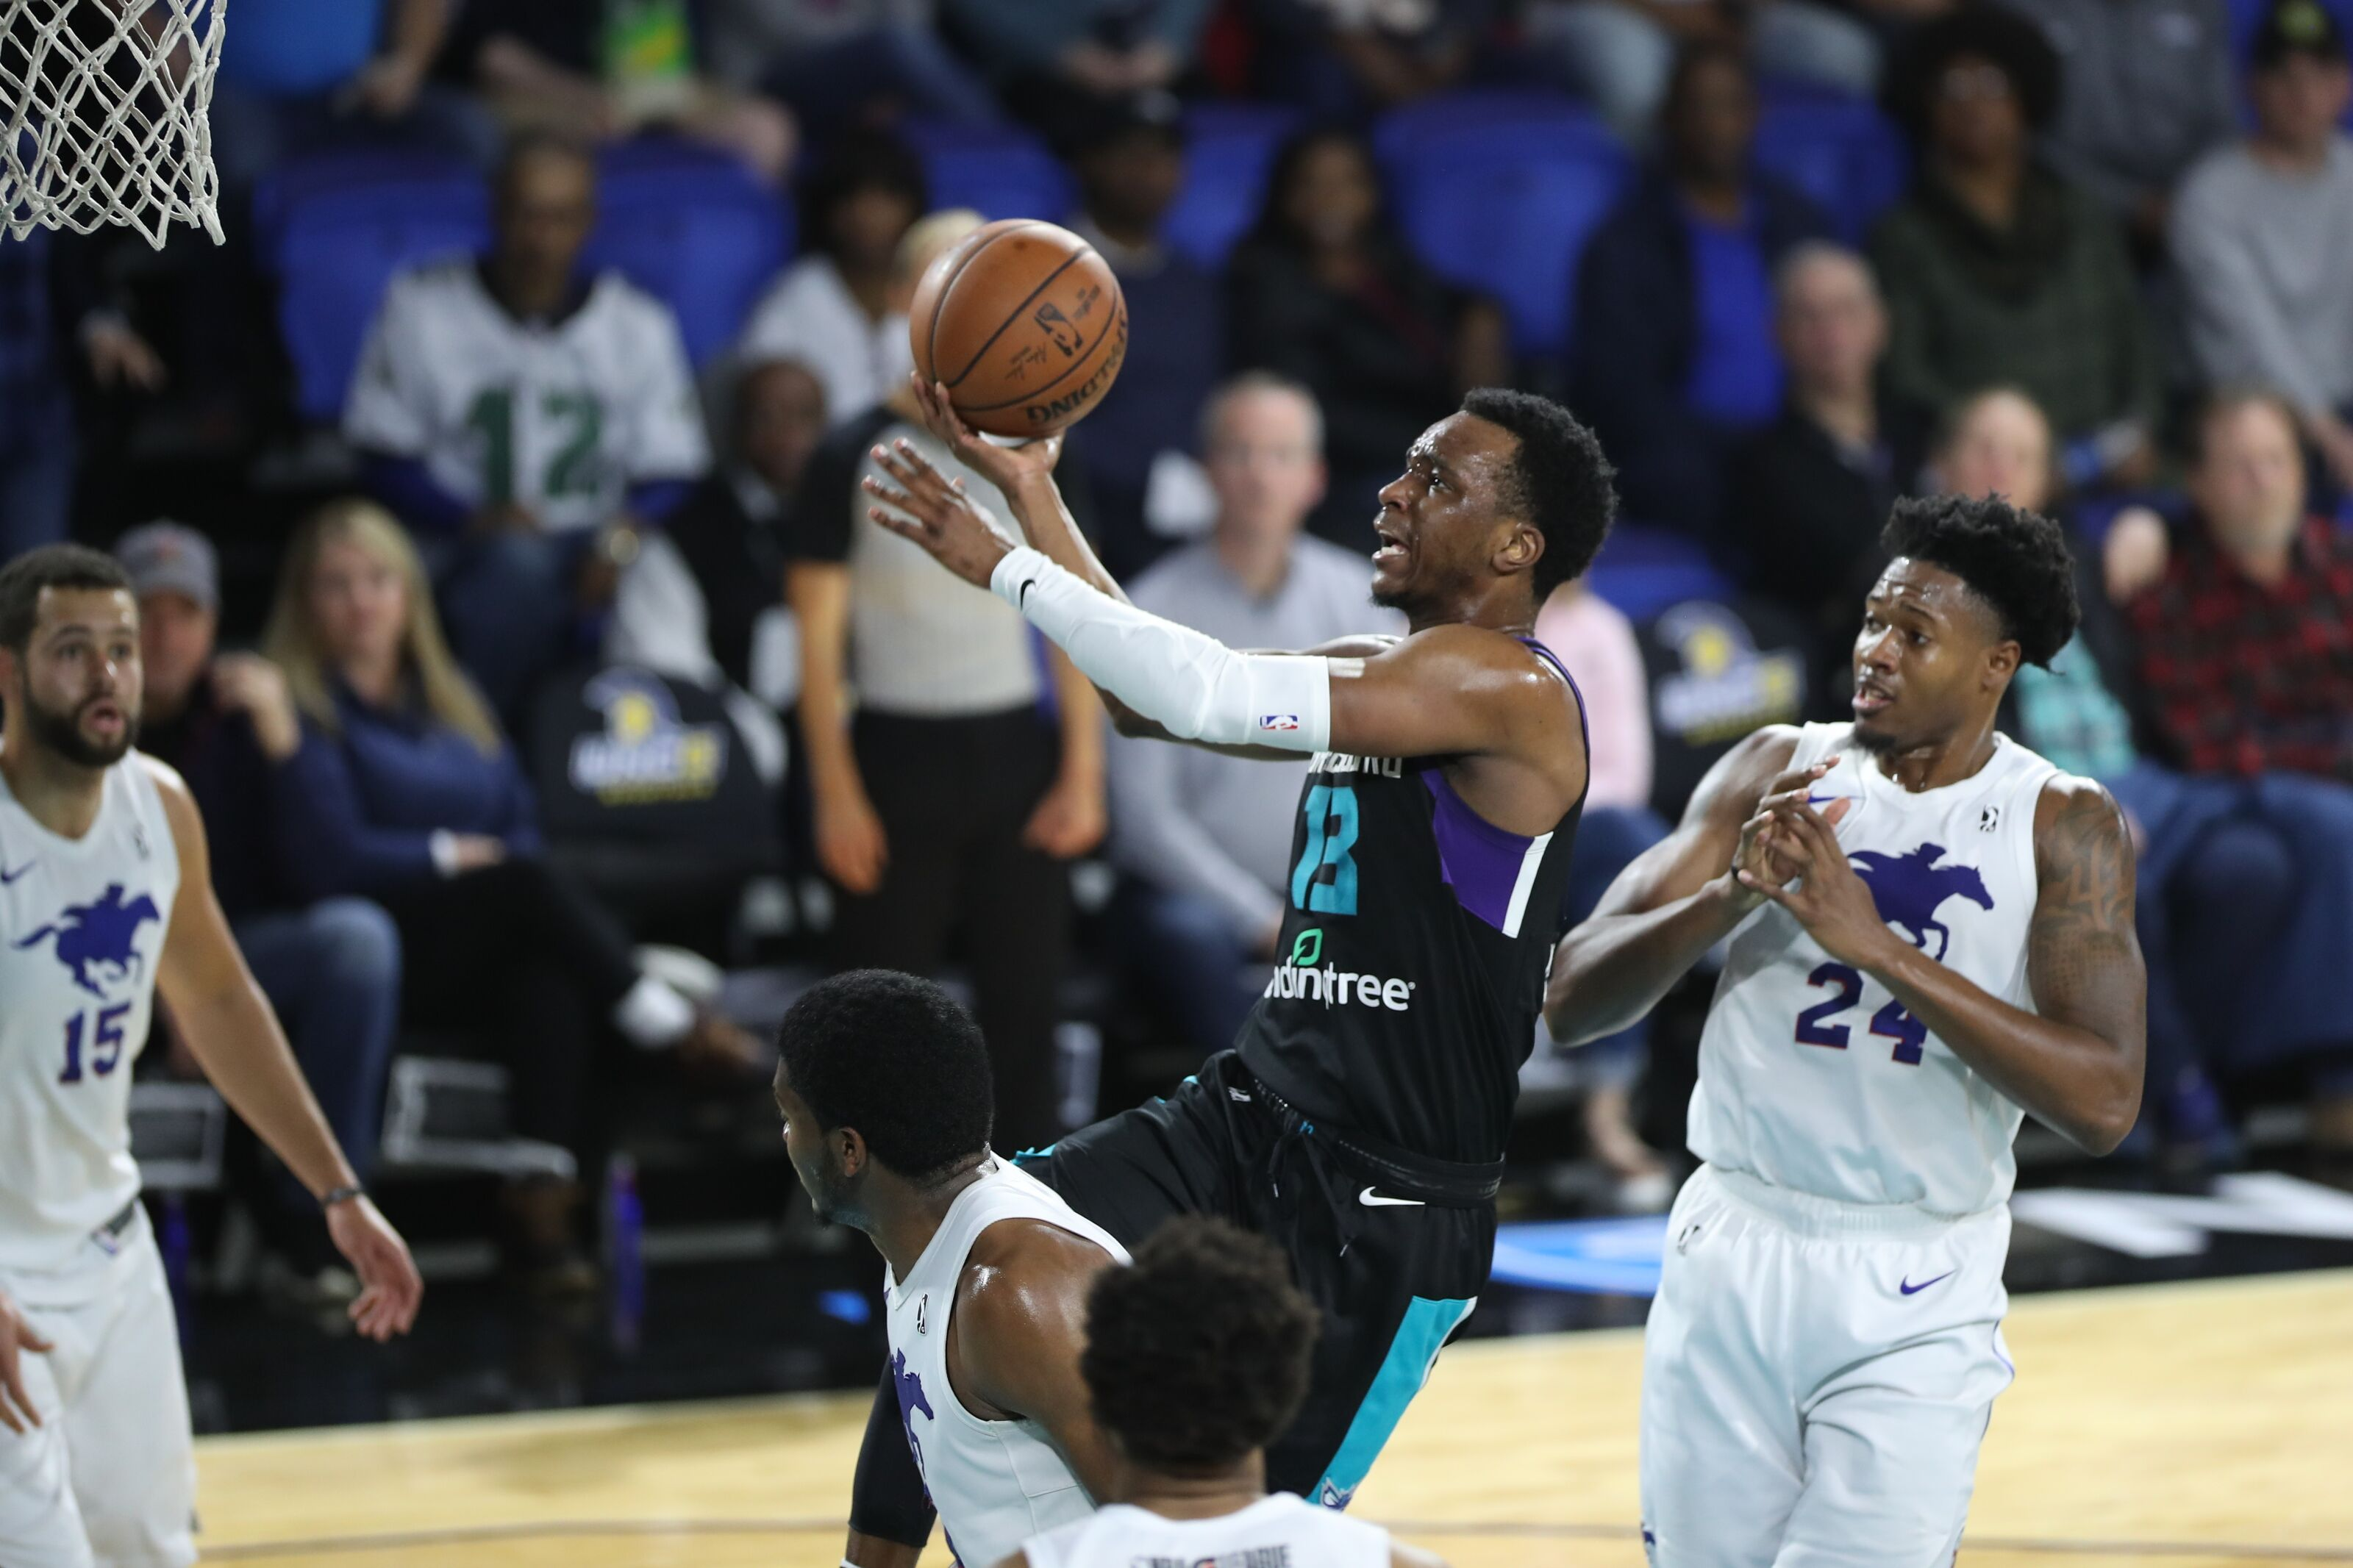 42690a830 Charlotte Hornets G-League Chealey transferred to Hornets